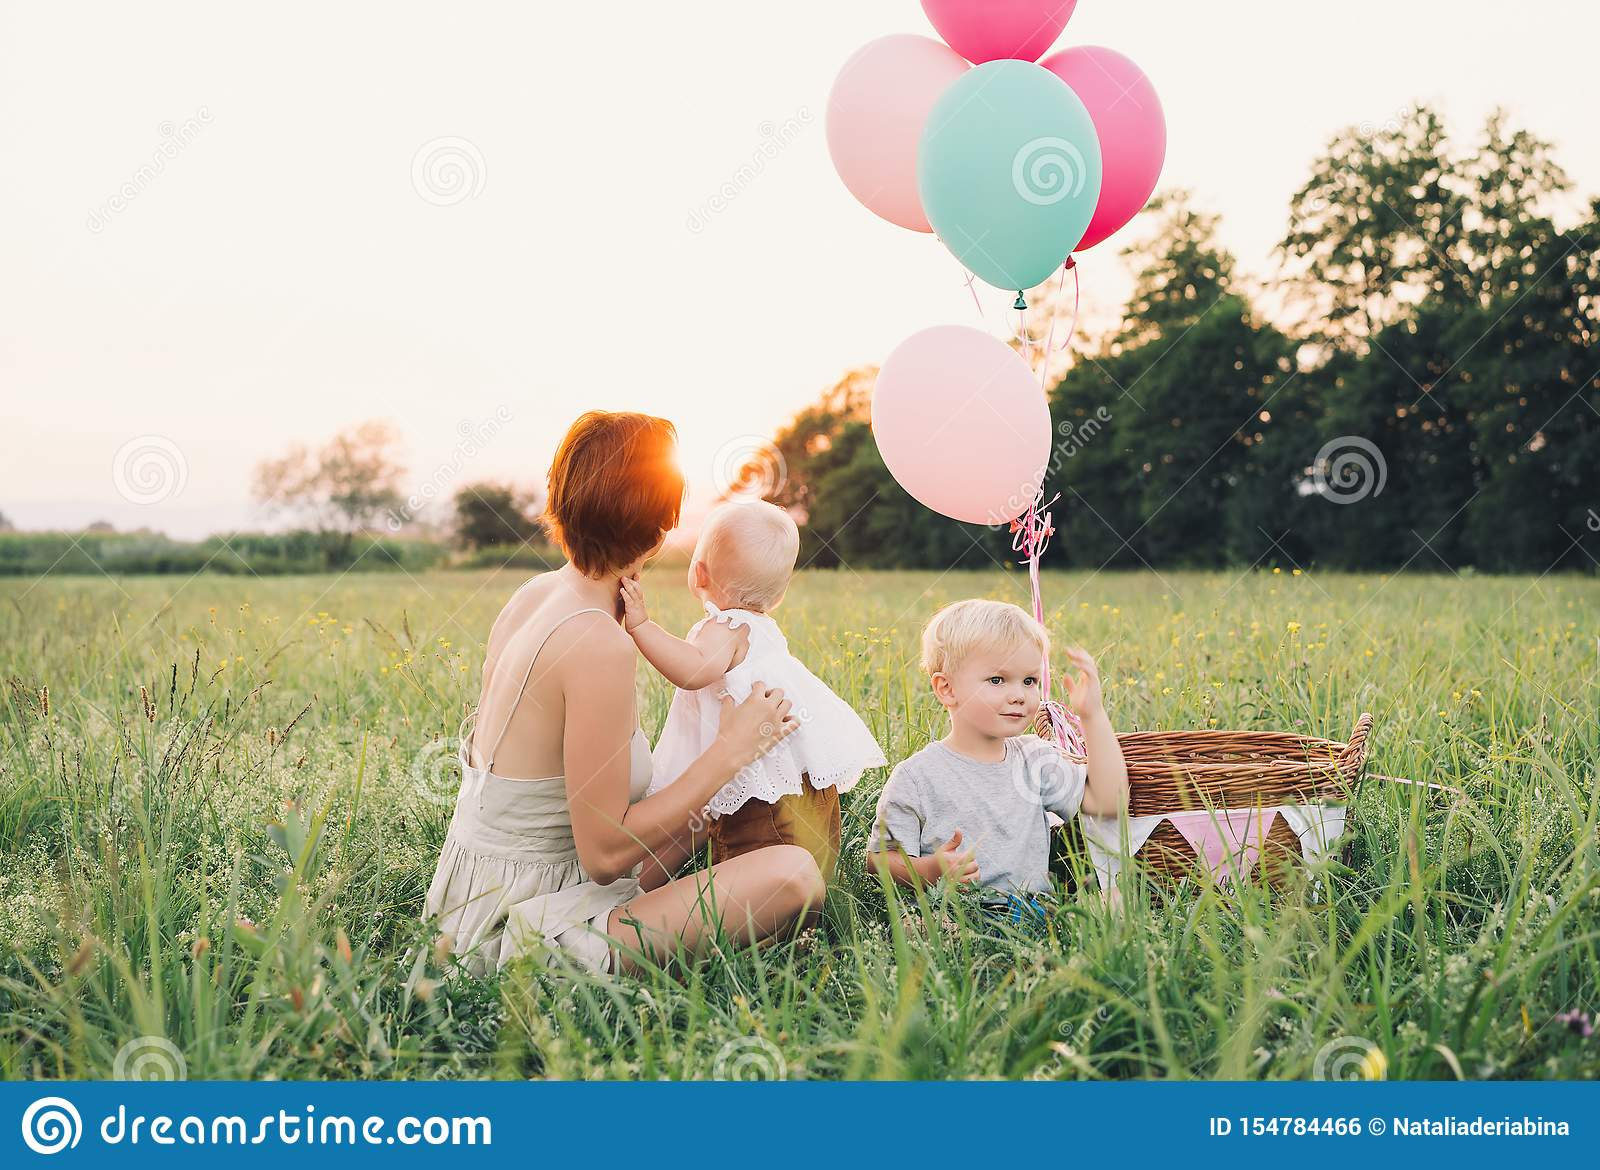 Mother and baby outdoors. Family on nature